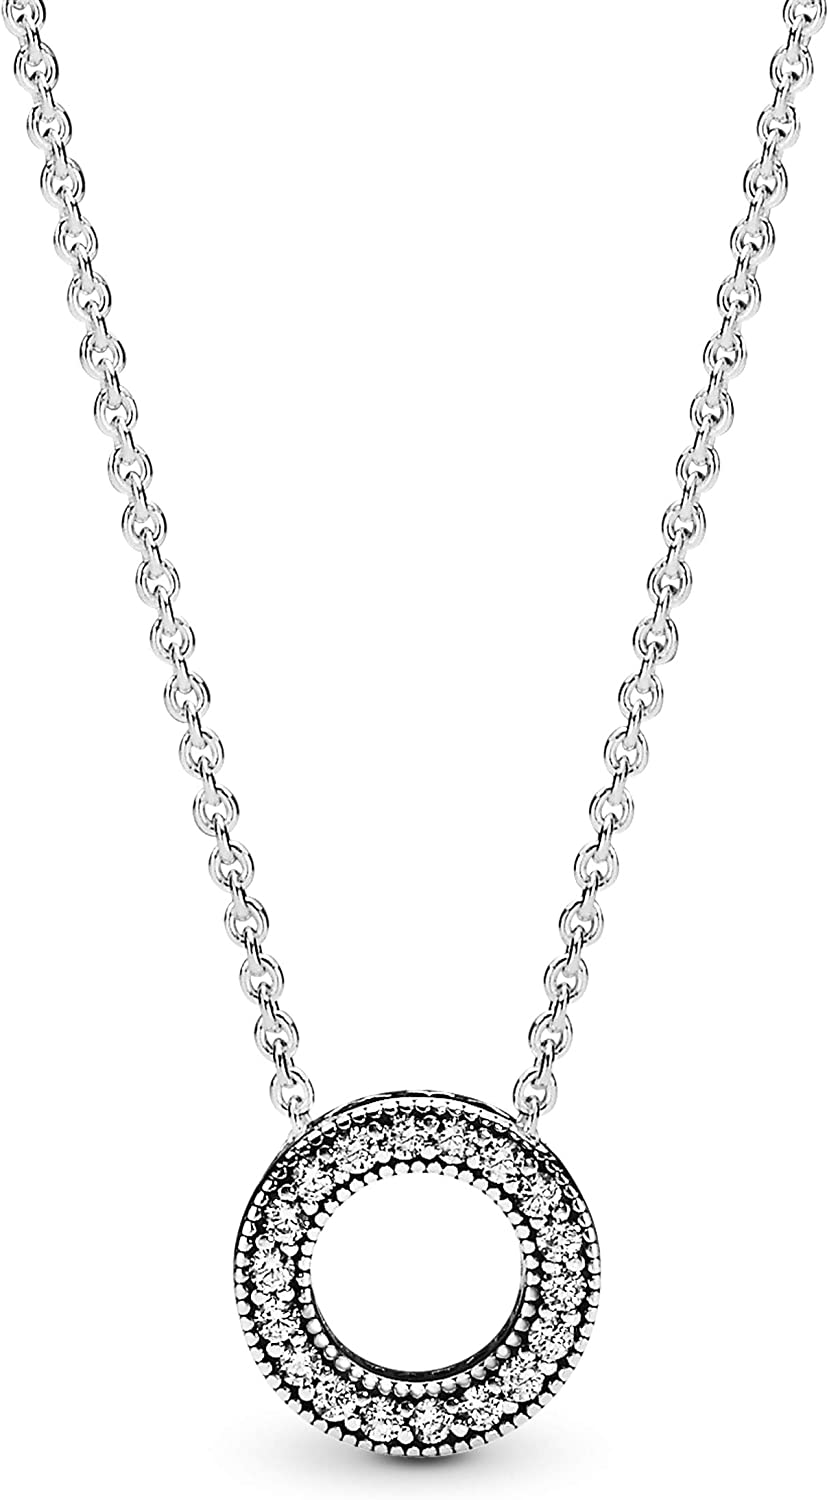 Pandora Jewelry - Hearts Of Pandora Necklace in Sterling Silver...